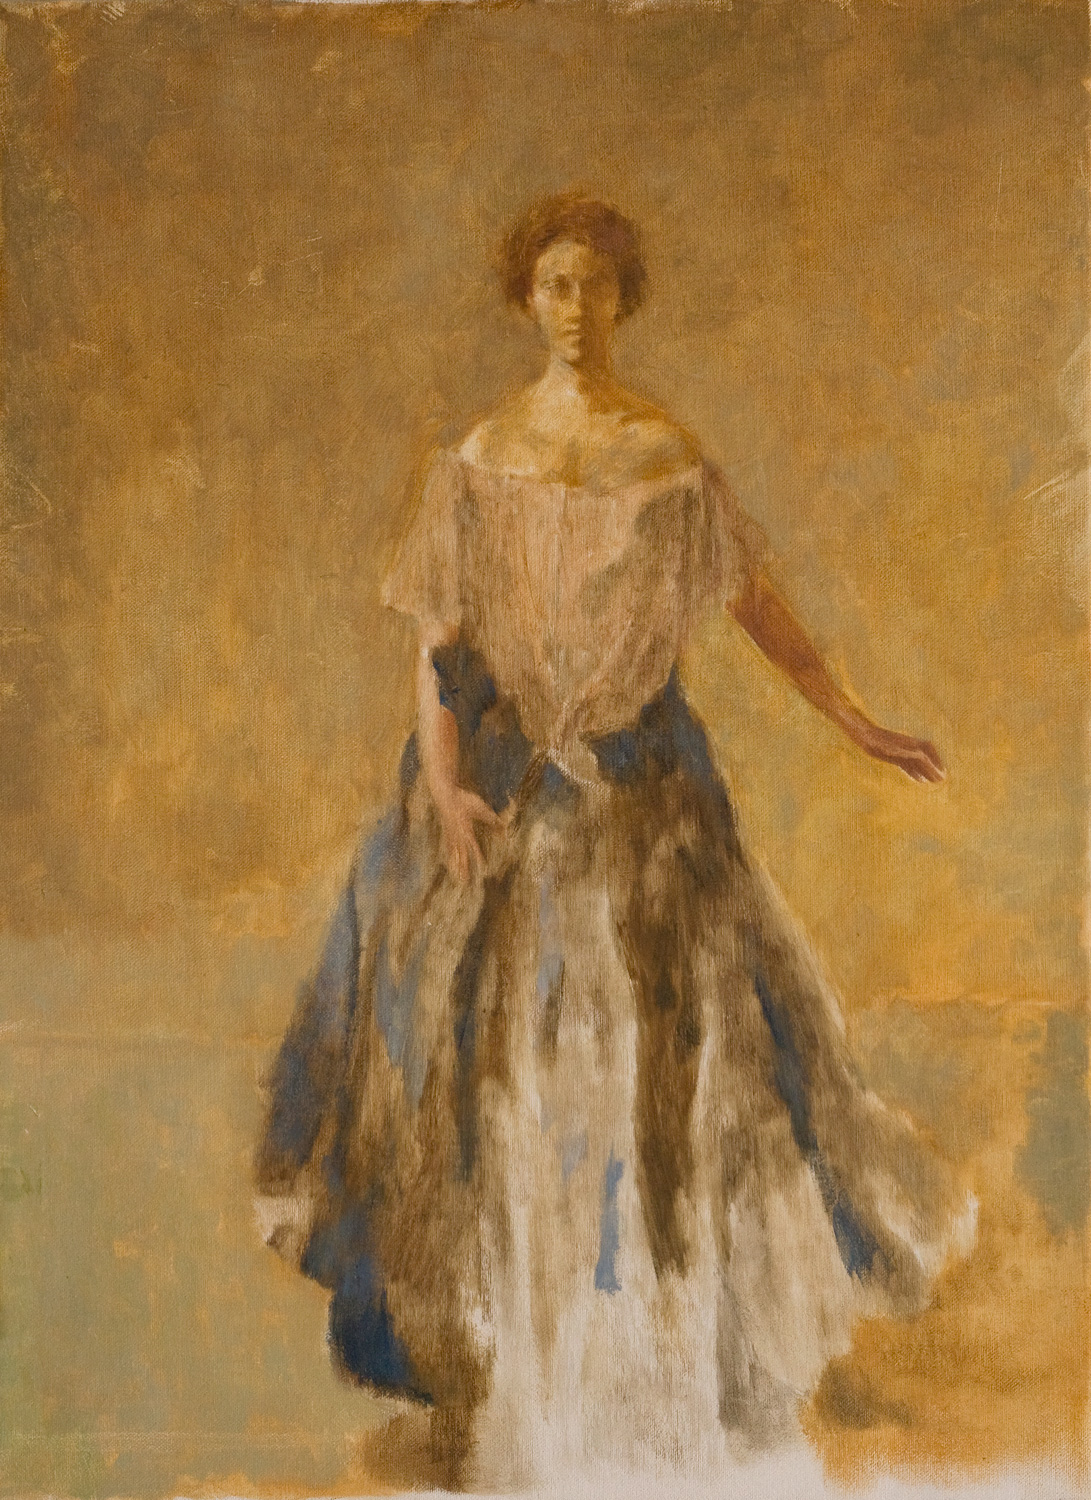 """The Blue Dress  after Thomas Wilmer Dewing  Oil/canvas 16"""" X 22"""" 2004 Painted from the original at the Freer Gallery of Art, Washington DC"""